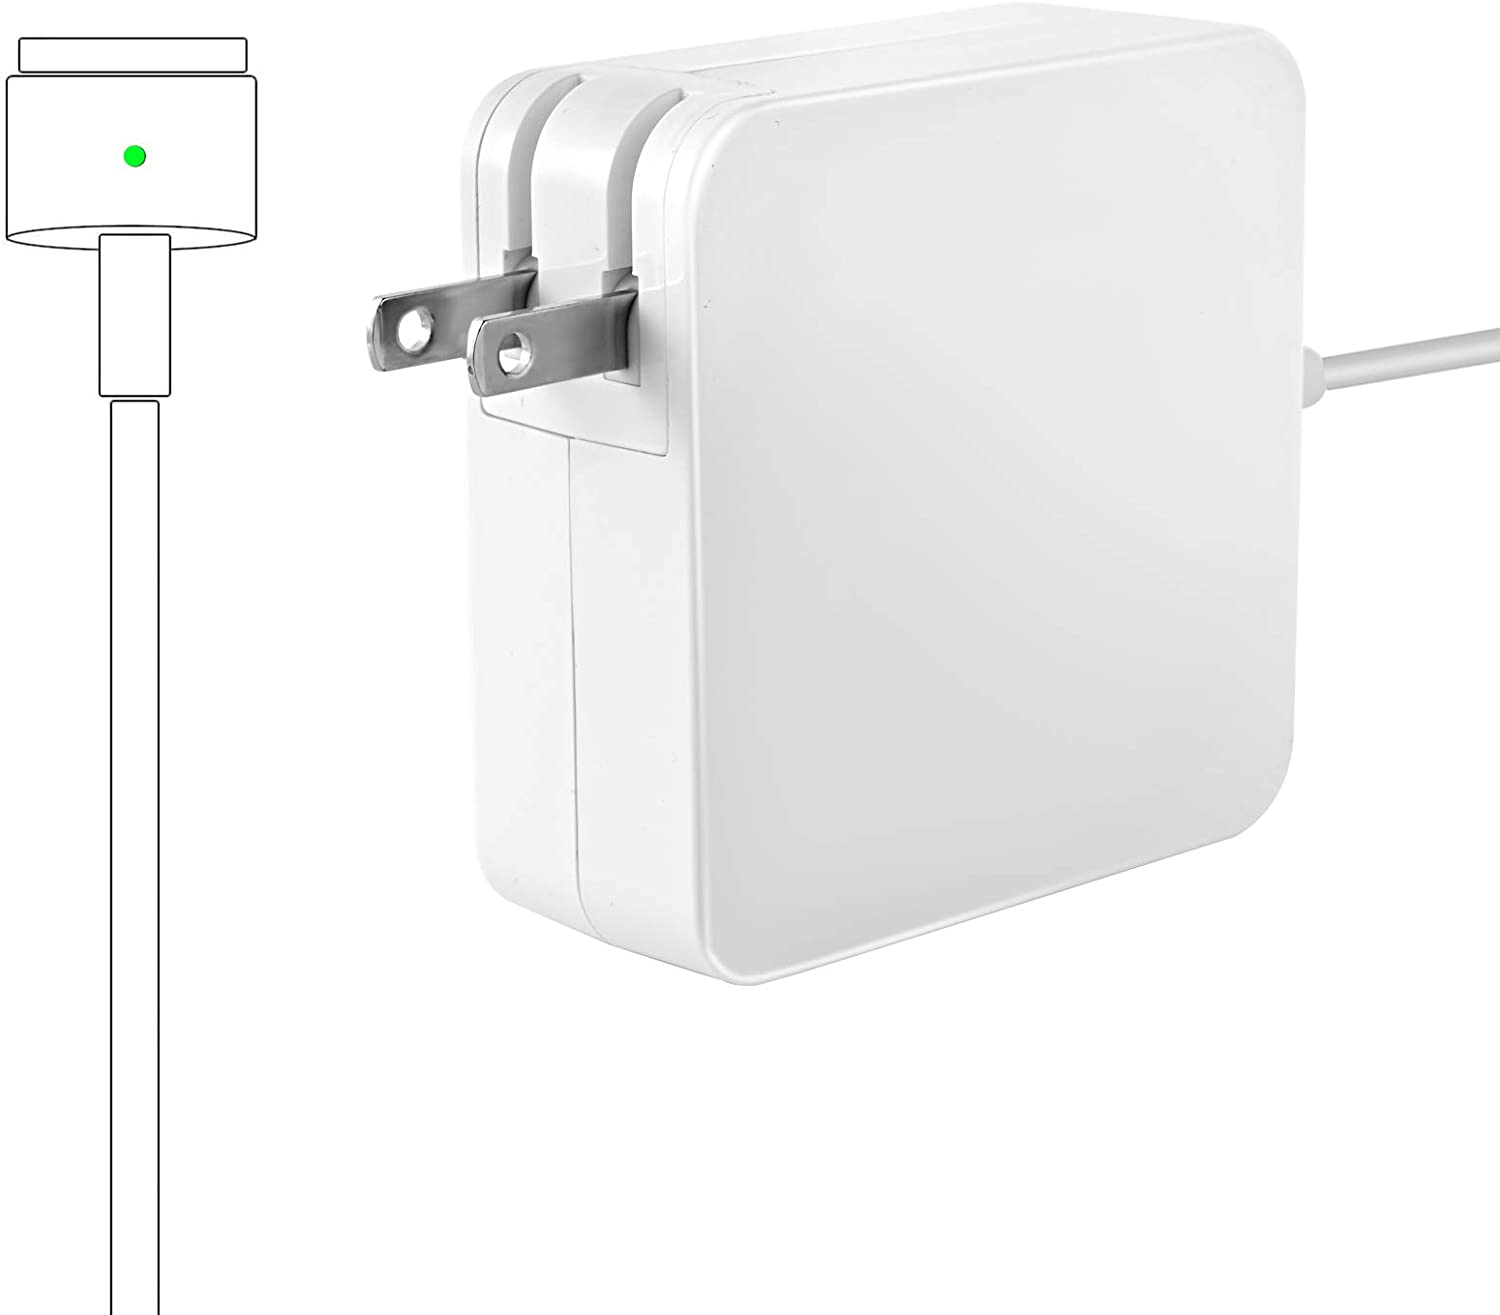 Liusd Charger, Compatible Charger for Mac Book Air, Replacement 45W Power Adapter Magnetic AC Charger for Mac Book Air 11&130inch (After Mid 2012)